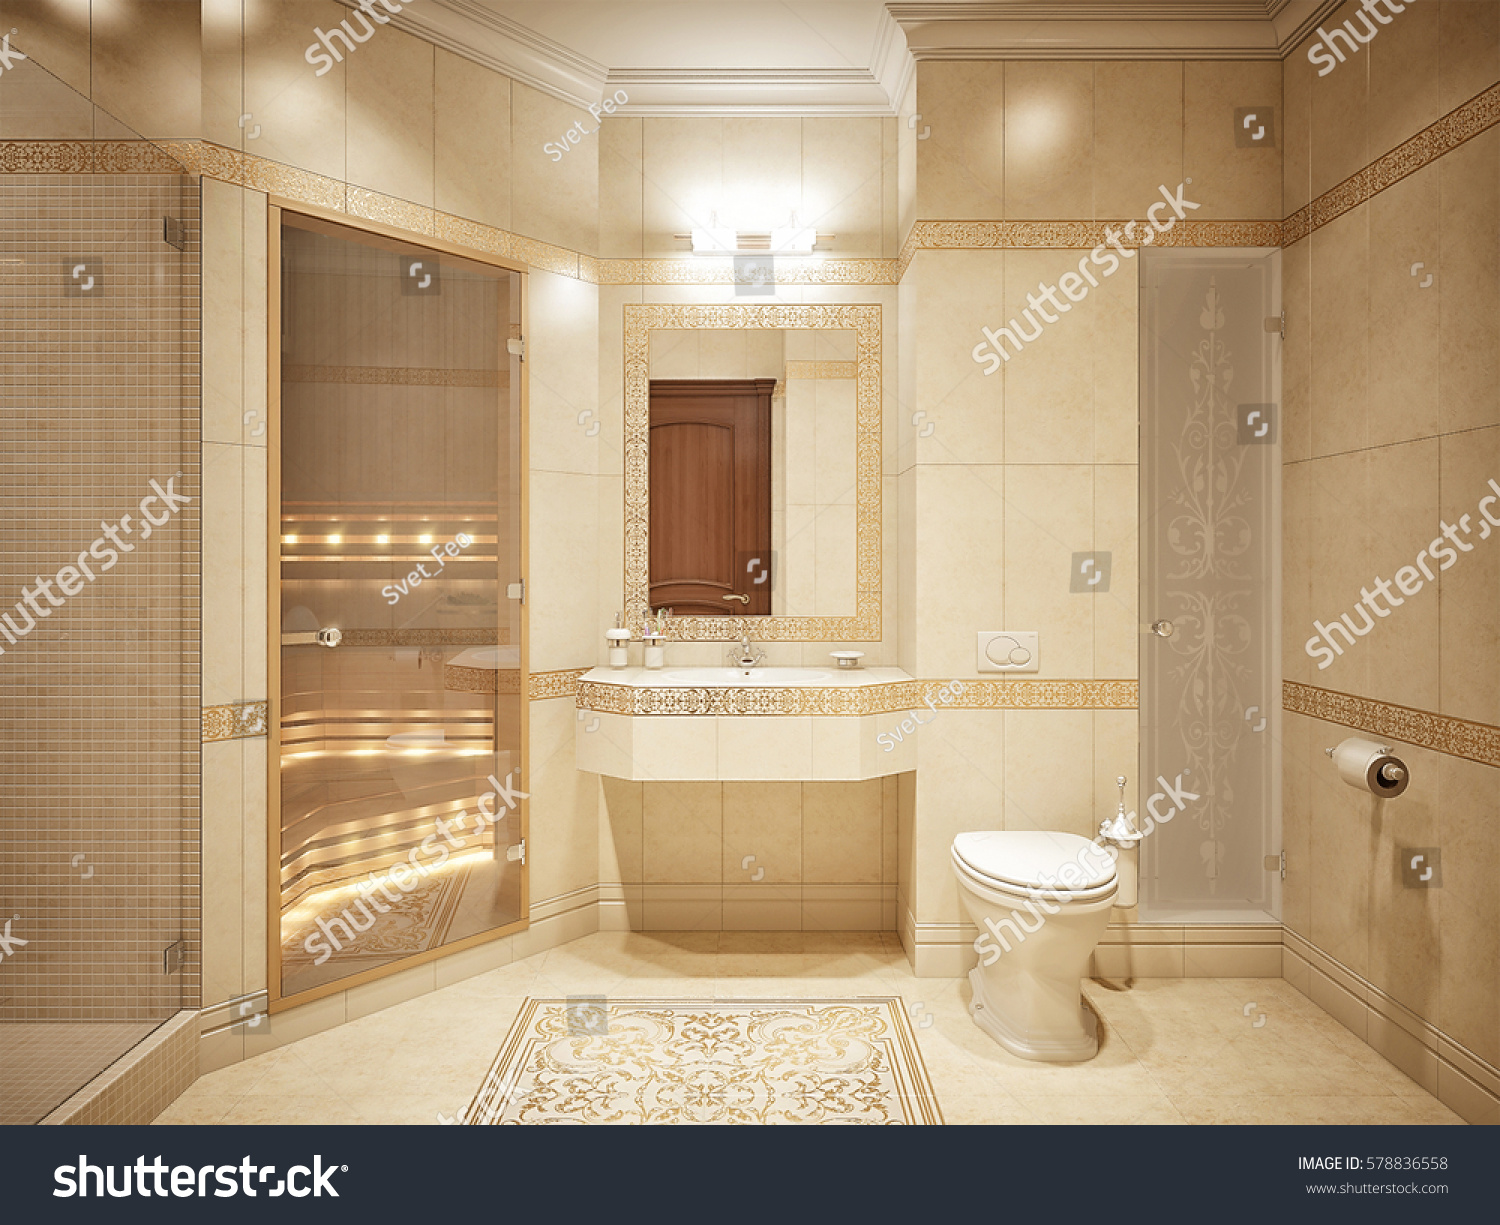 Luxurious bathroom interior design classic style stock for 3d bathroom decor